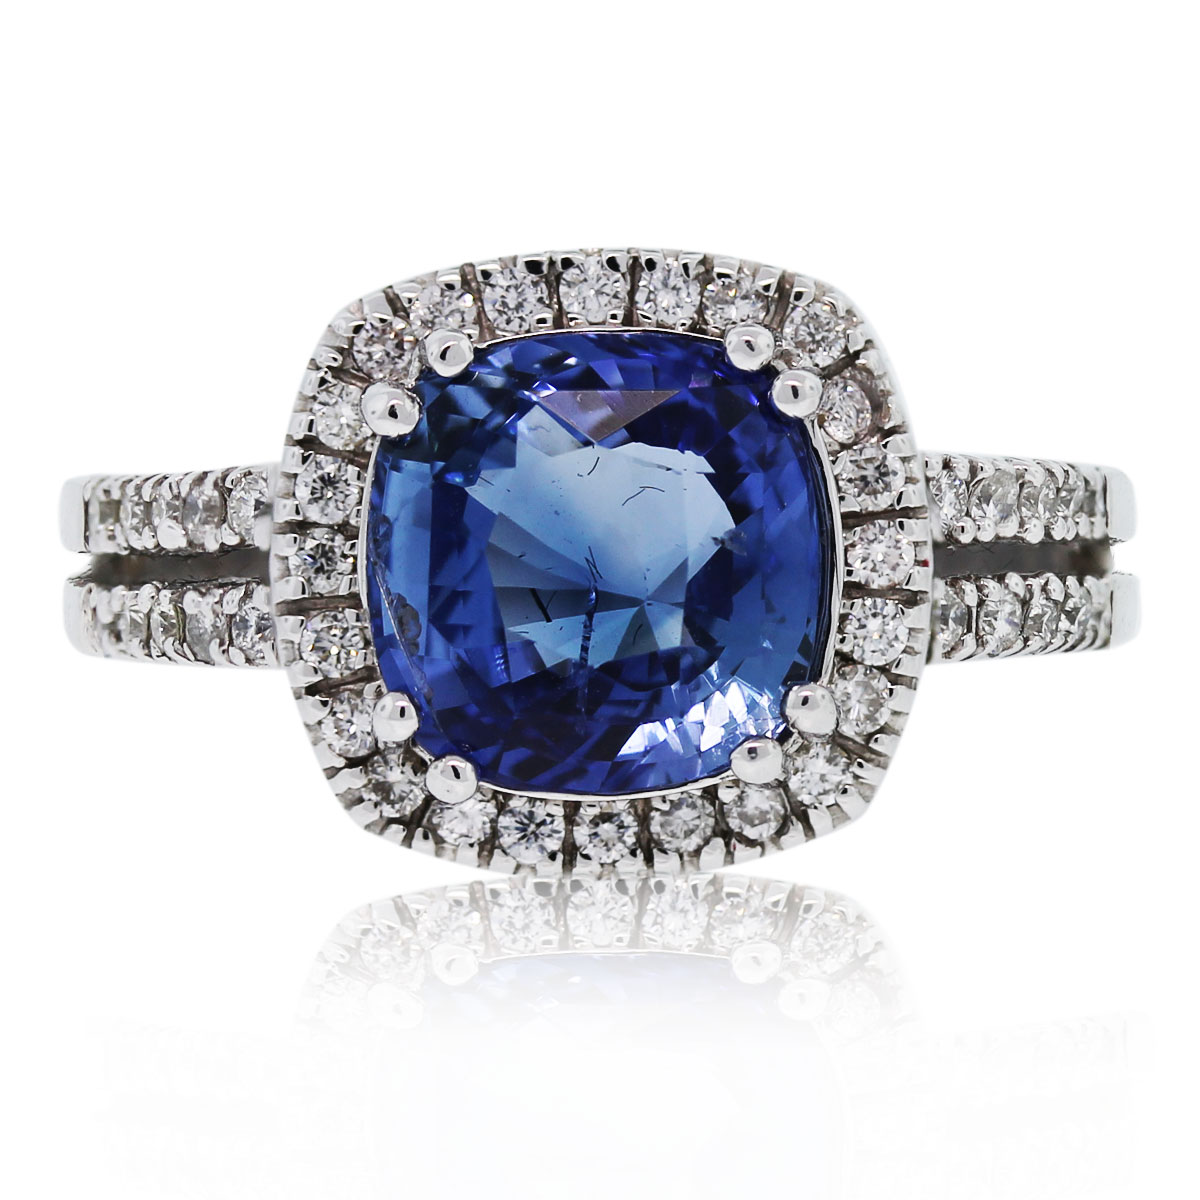 You must see this 18k White Gold Cushion Cut Sapphire & Diamond Ring